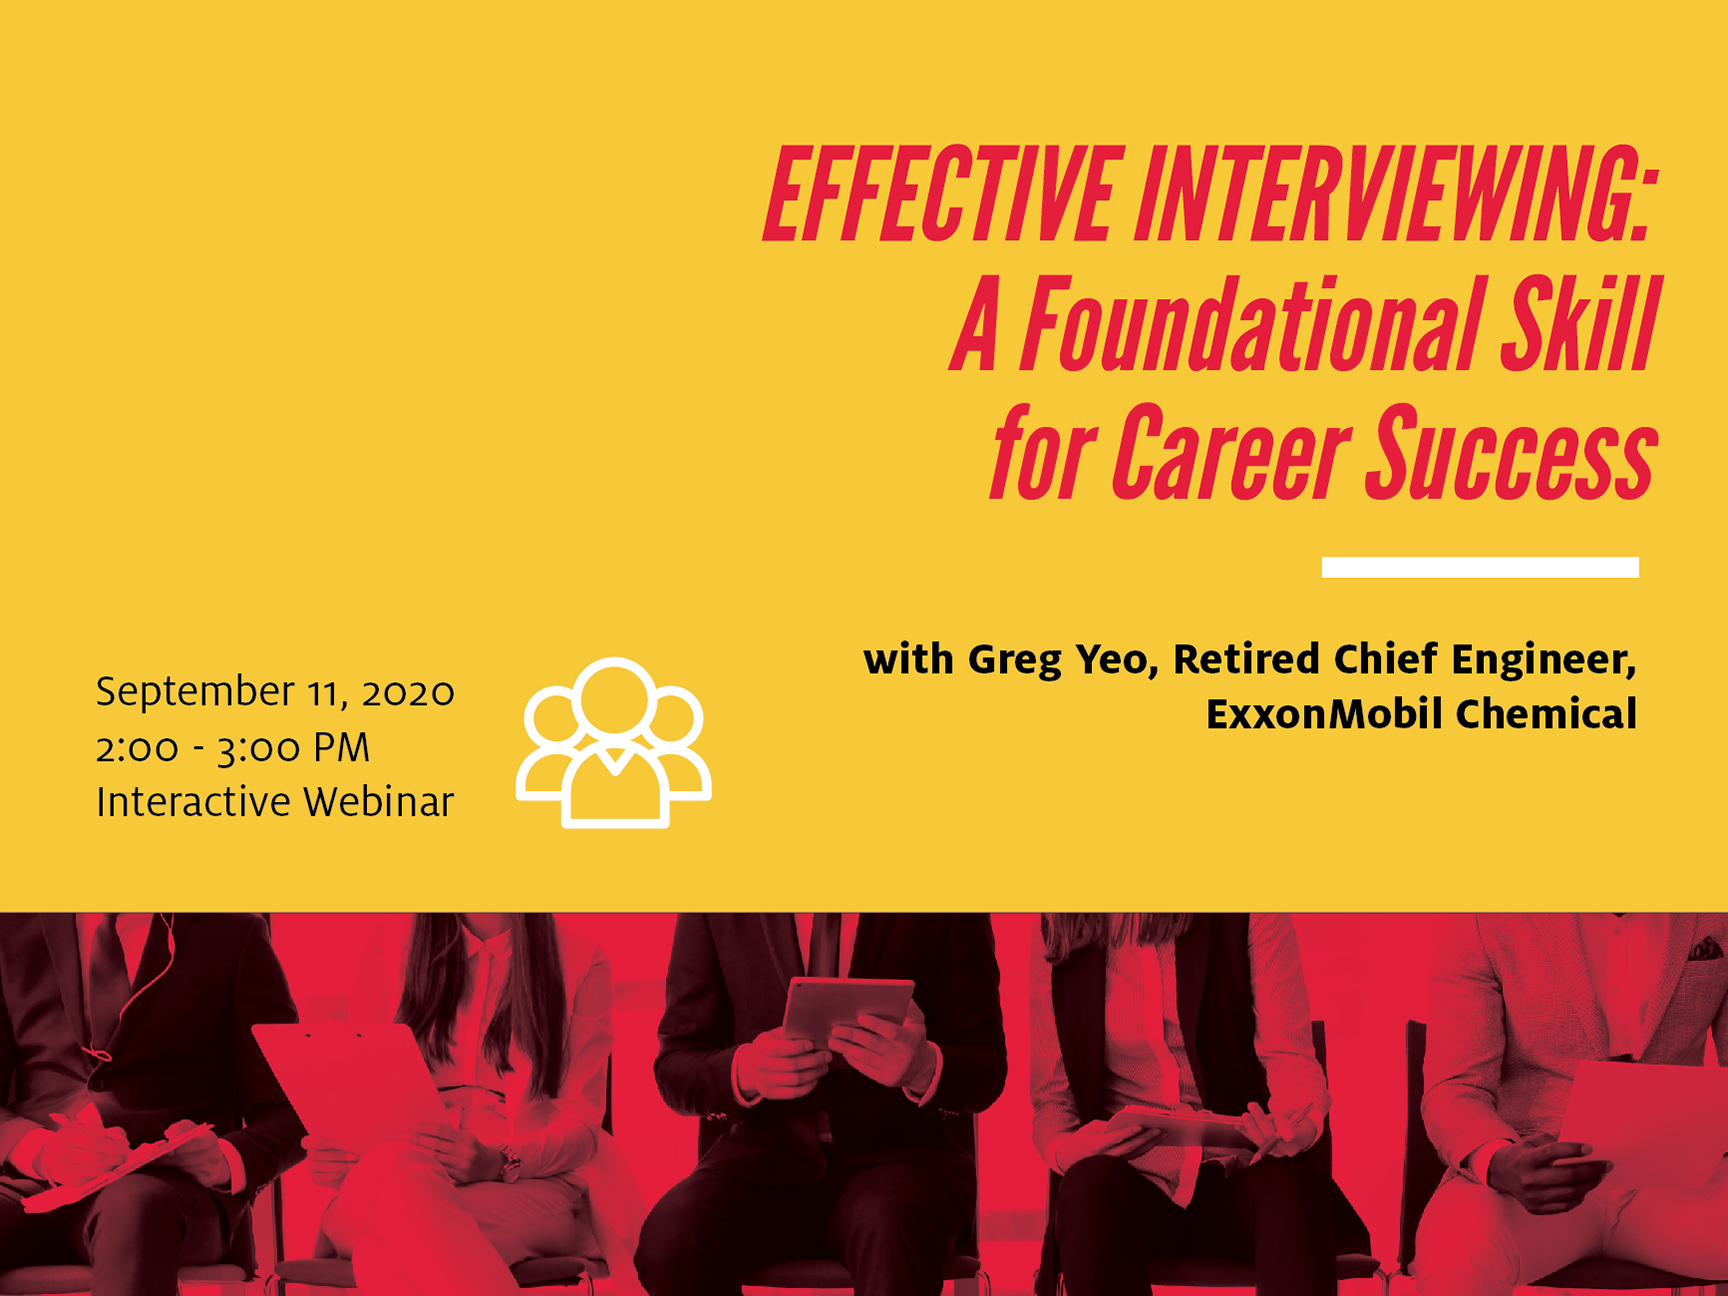 Effective Interviewing: A Foundational Skill for Career Success Image